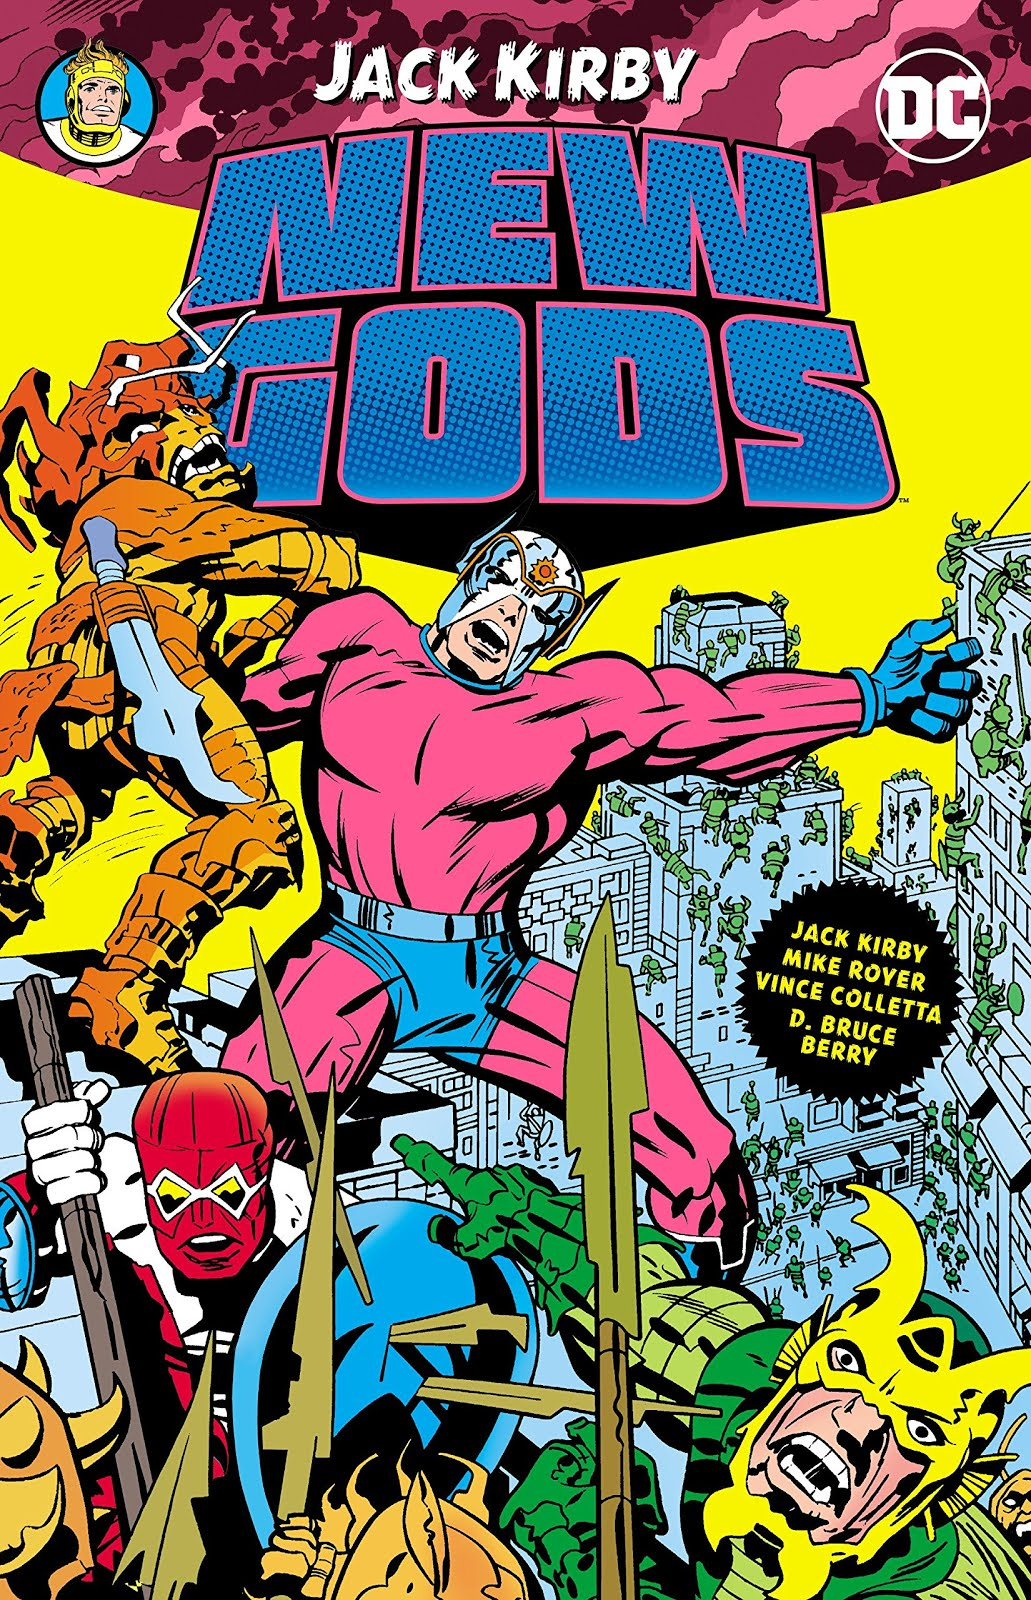 JACK KIRBY NEW GODS!